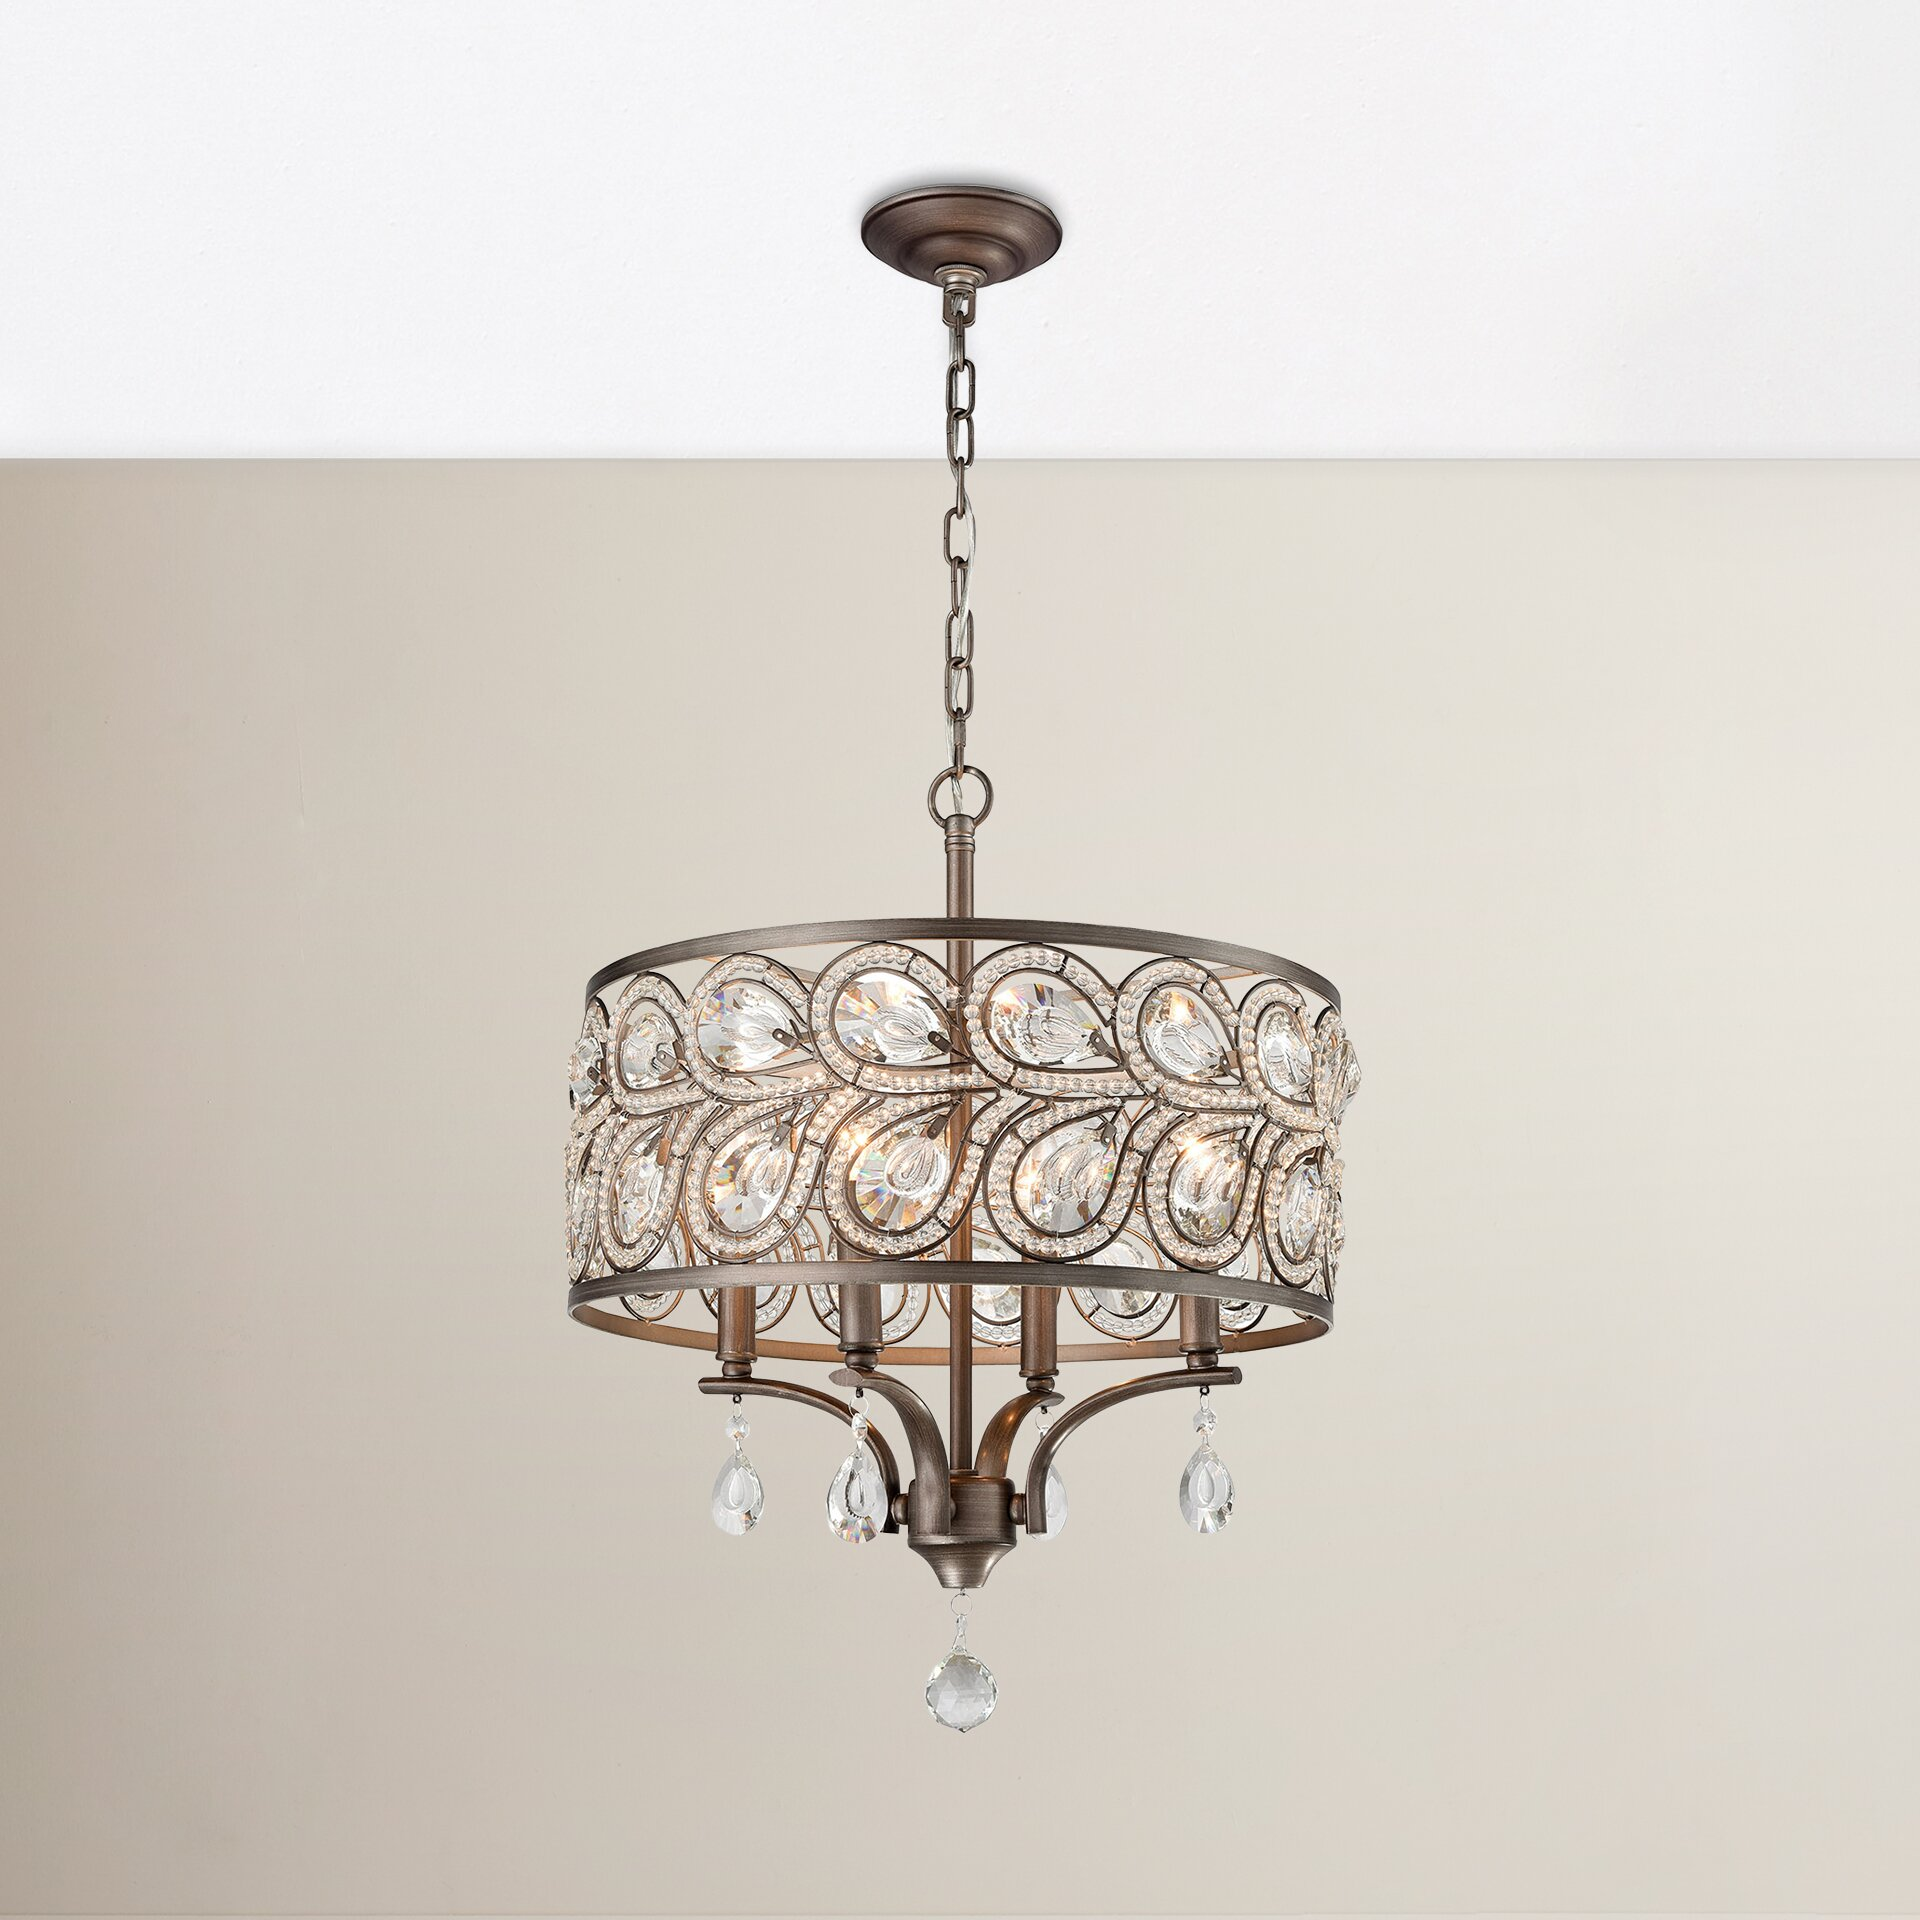 House of hampton norwich 4 light drum chandelier wayfair - Lighting and chandeliers ...